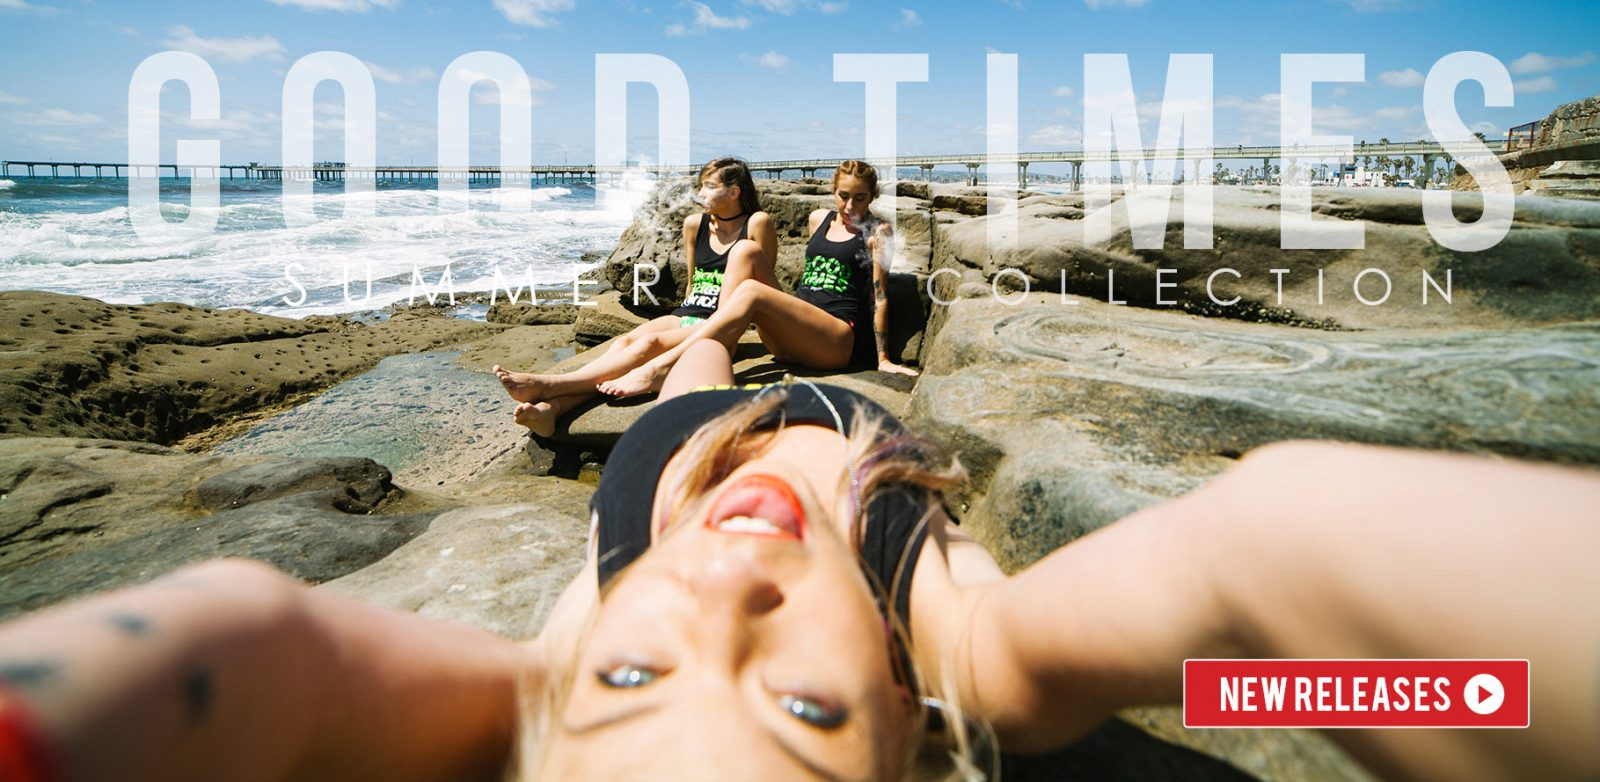 good-times-stonerdays-clothing-1600x782